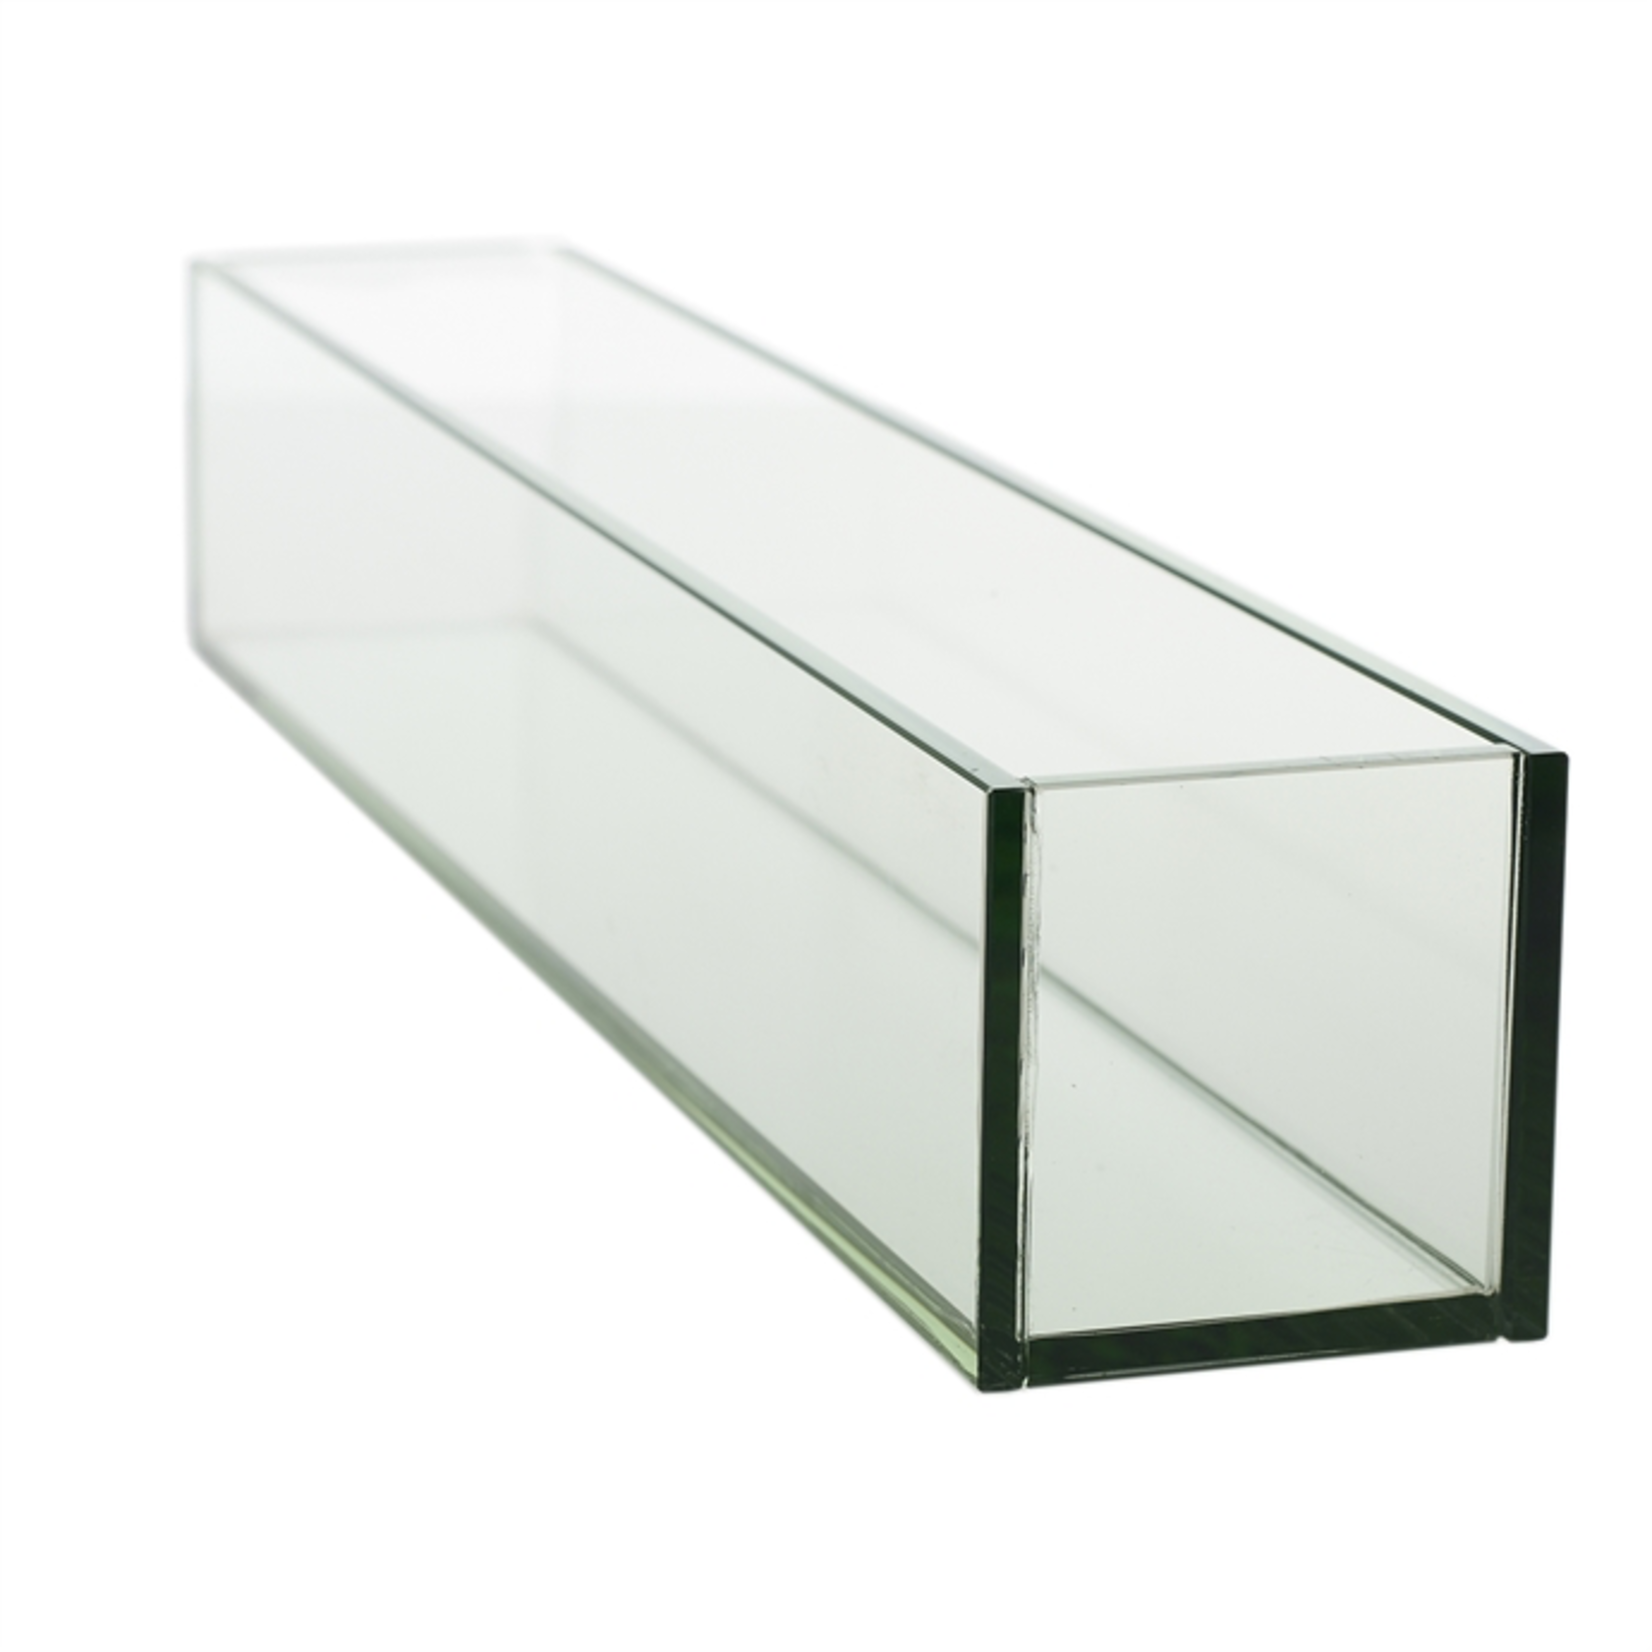 """24""""L x 4"""" x 4"""" LOW RECTANGLE PLATE GLASS PLANTER (AD)"""